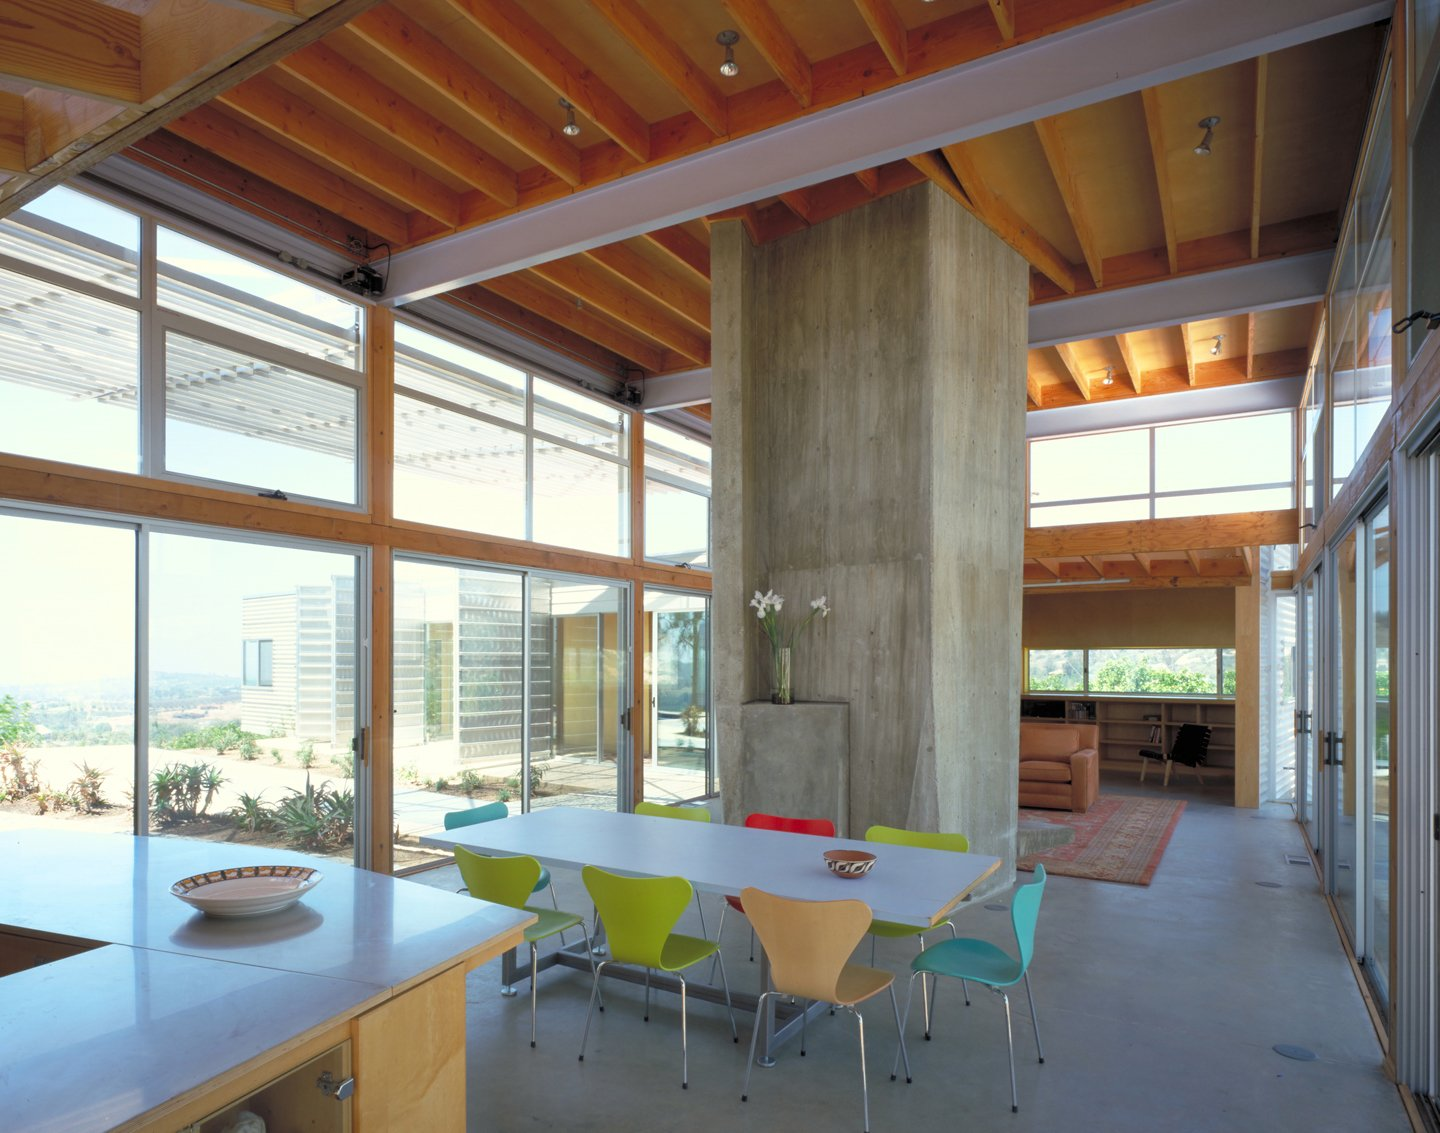 #interior #inside #indoor #diningroom #kitchen #concrete #color #table #chair #eco #green #sustainable #ValleyCenter #California #KevinDalyArchitects  Valley Center House by Kevin Daly Architects